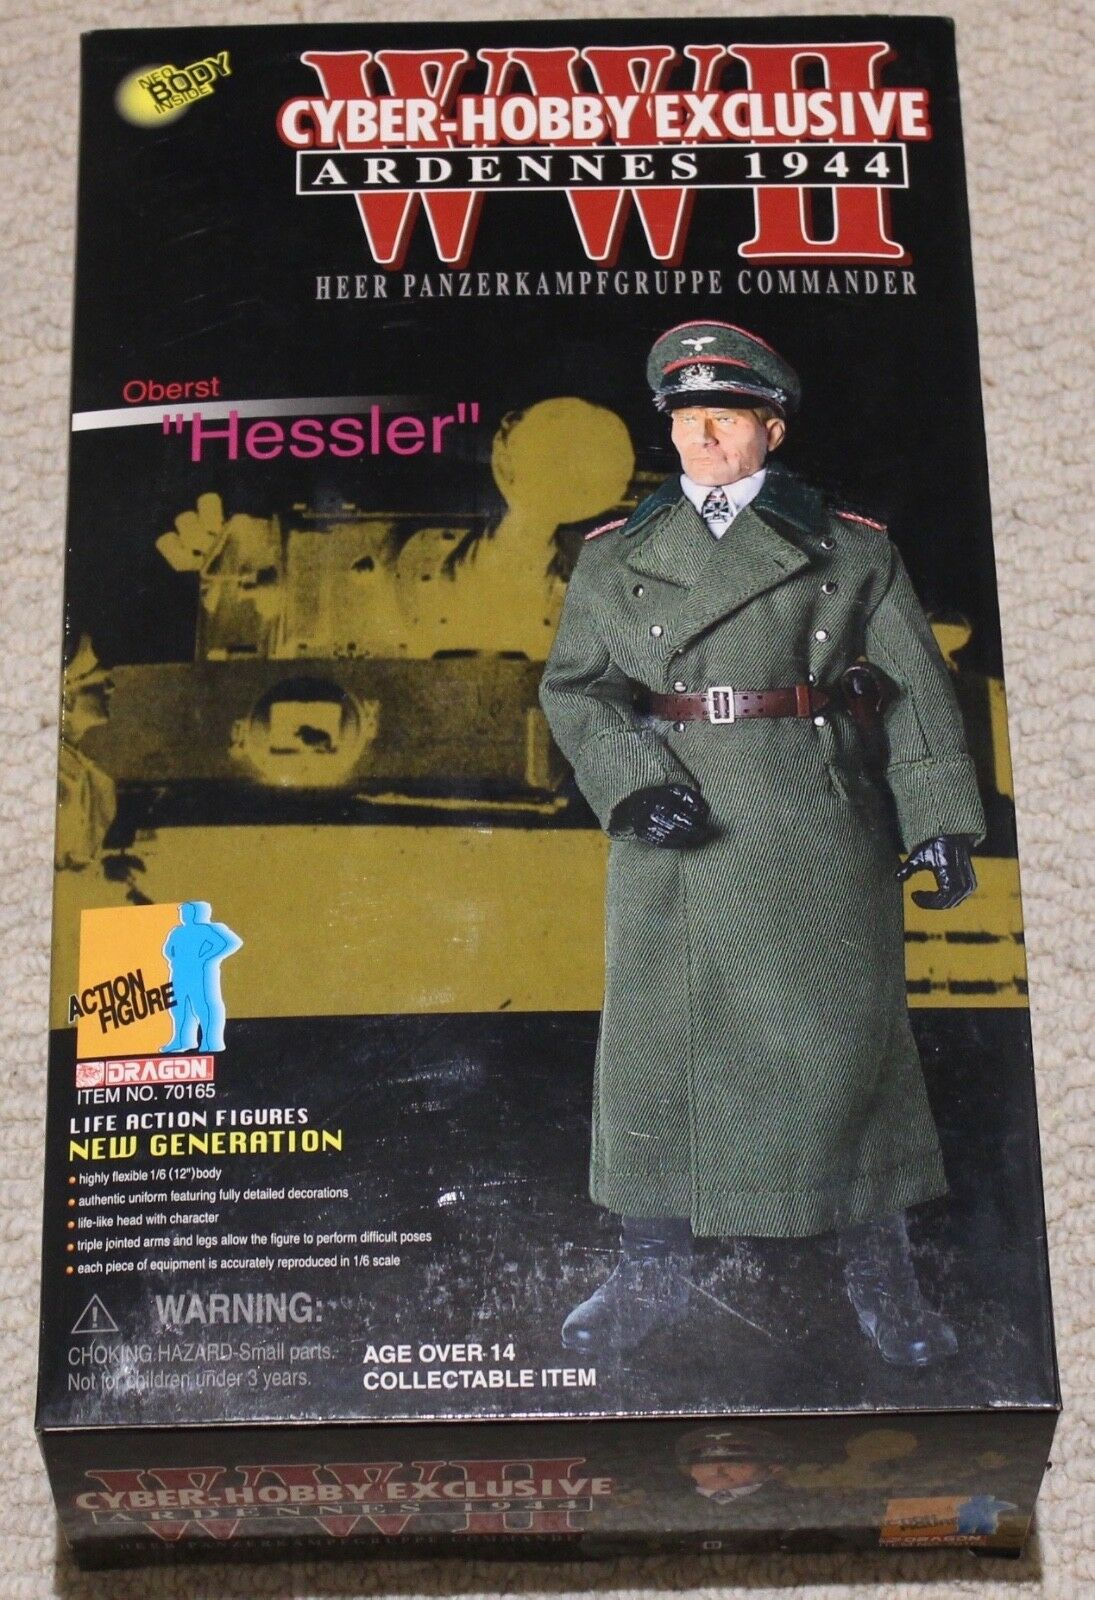 Dragon action figure 1/6 ww11 german hessler 12'' boxed did cyber hot toy